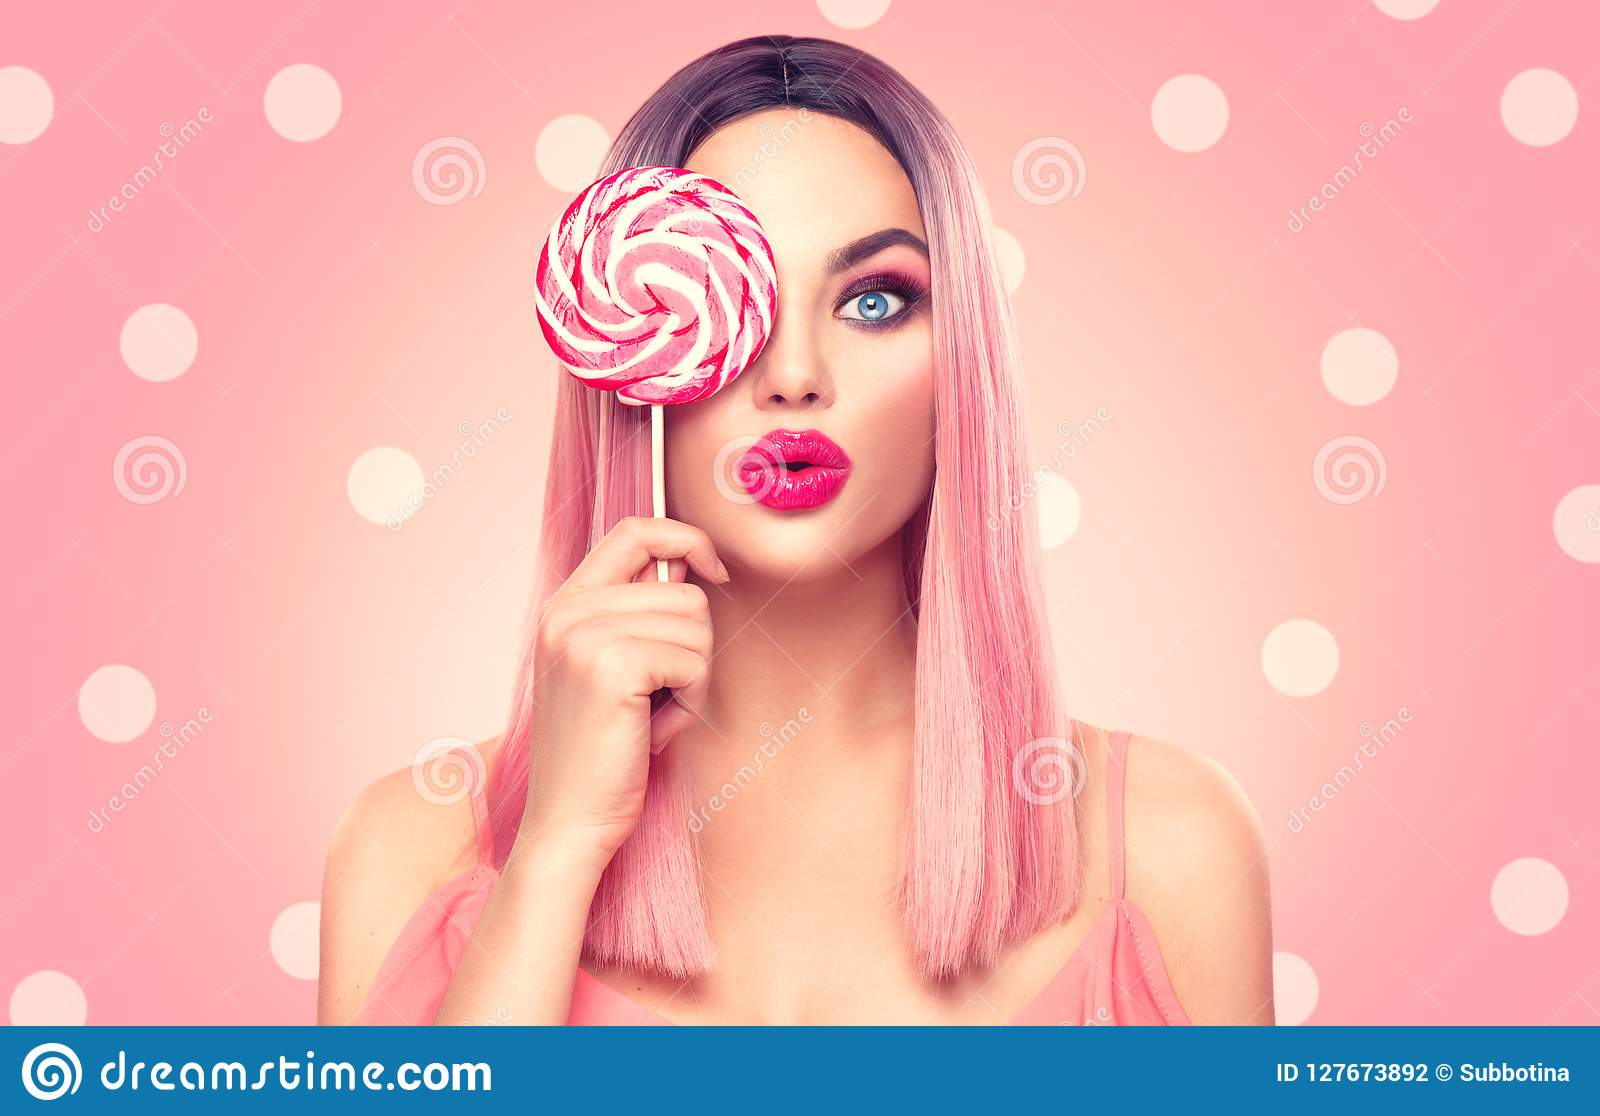 Beauty model woman with trendy pink hairstyle and beautiful makeup holding lollipop candy